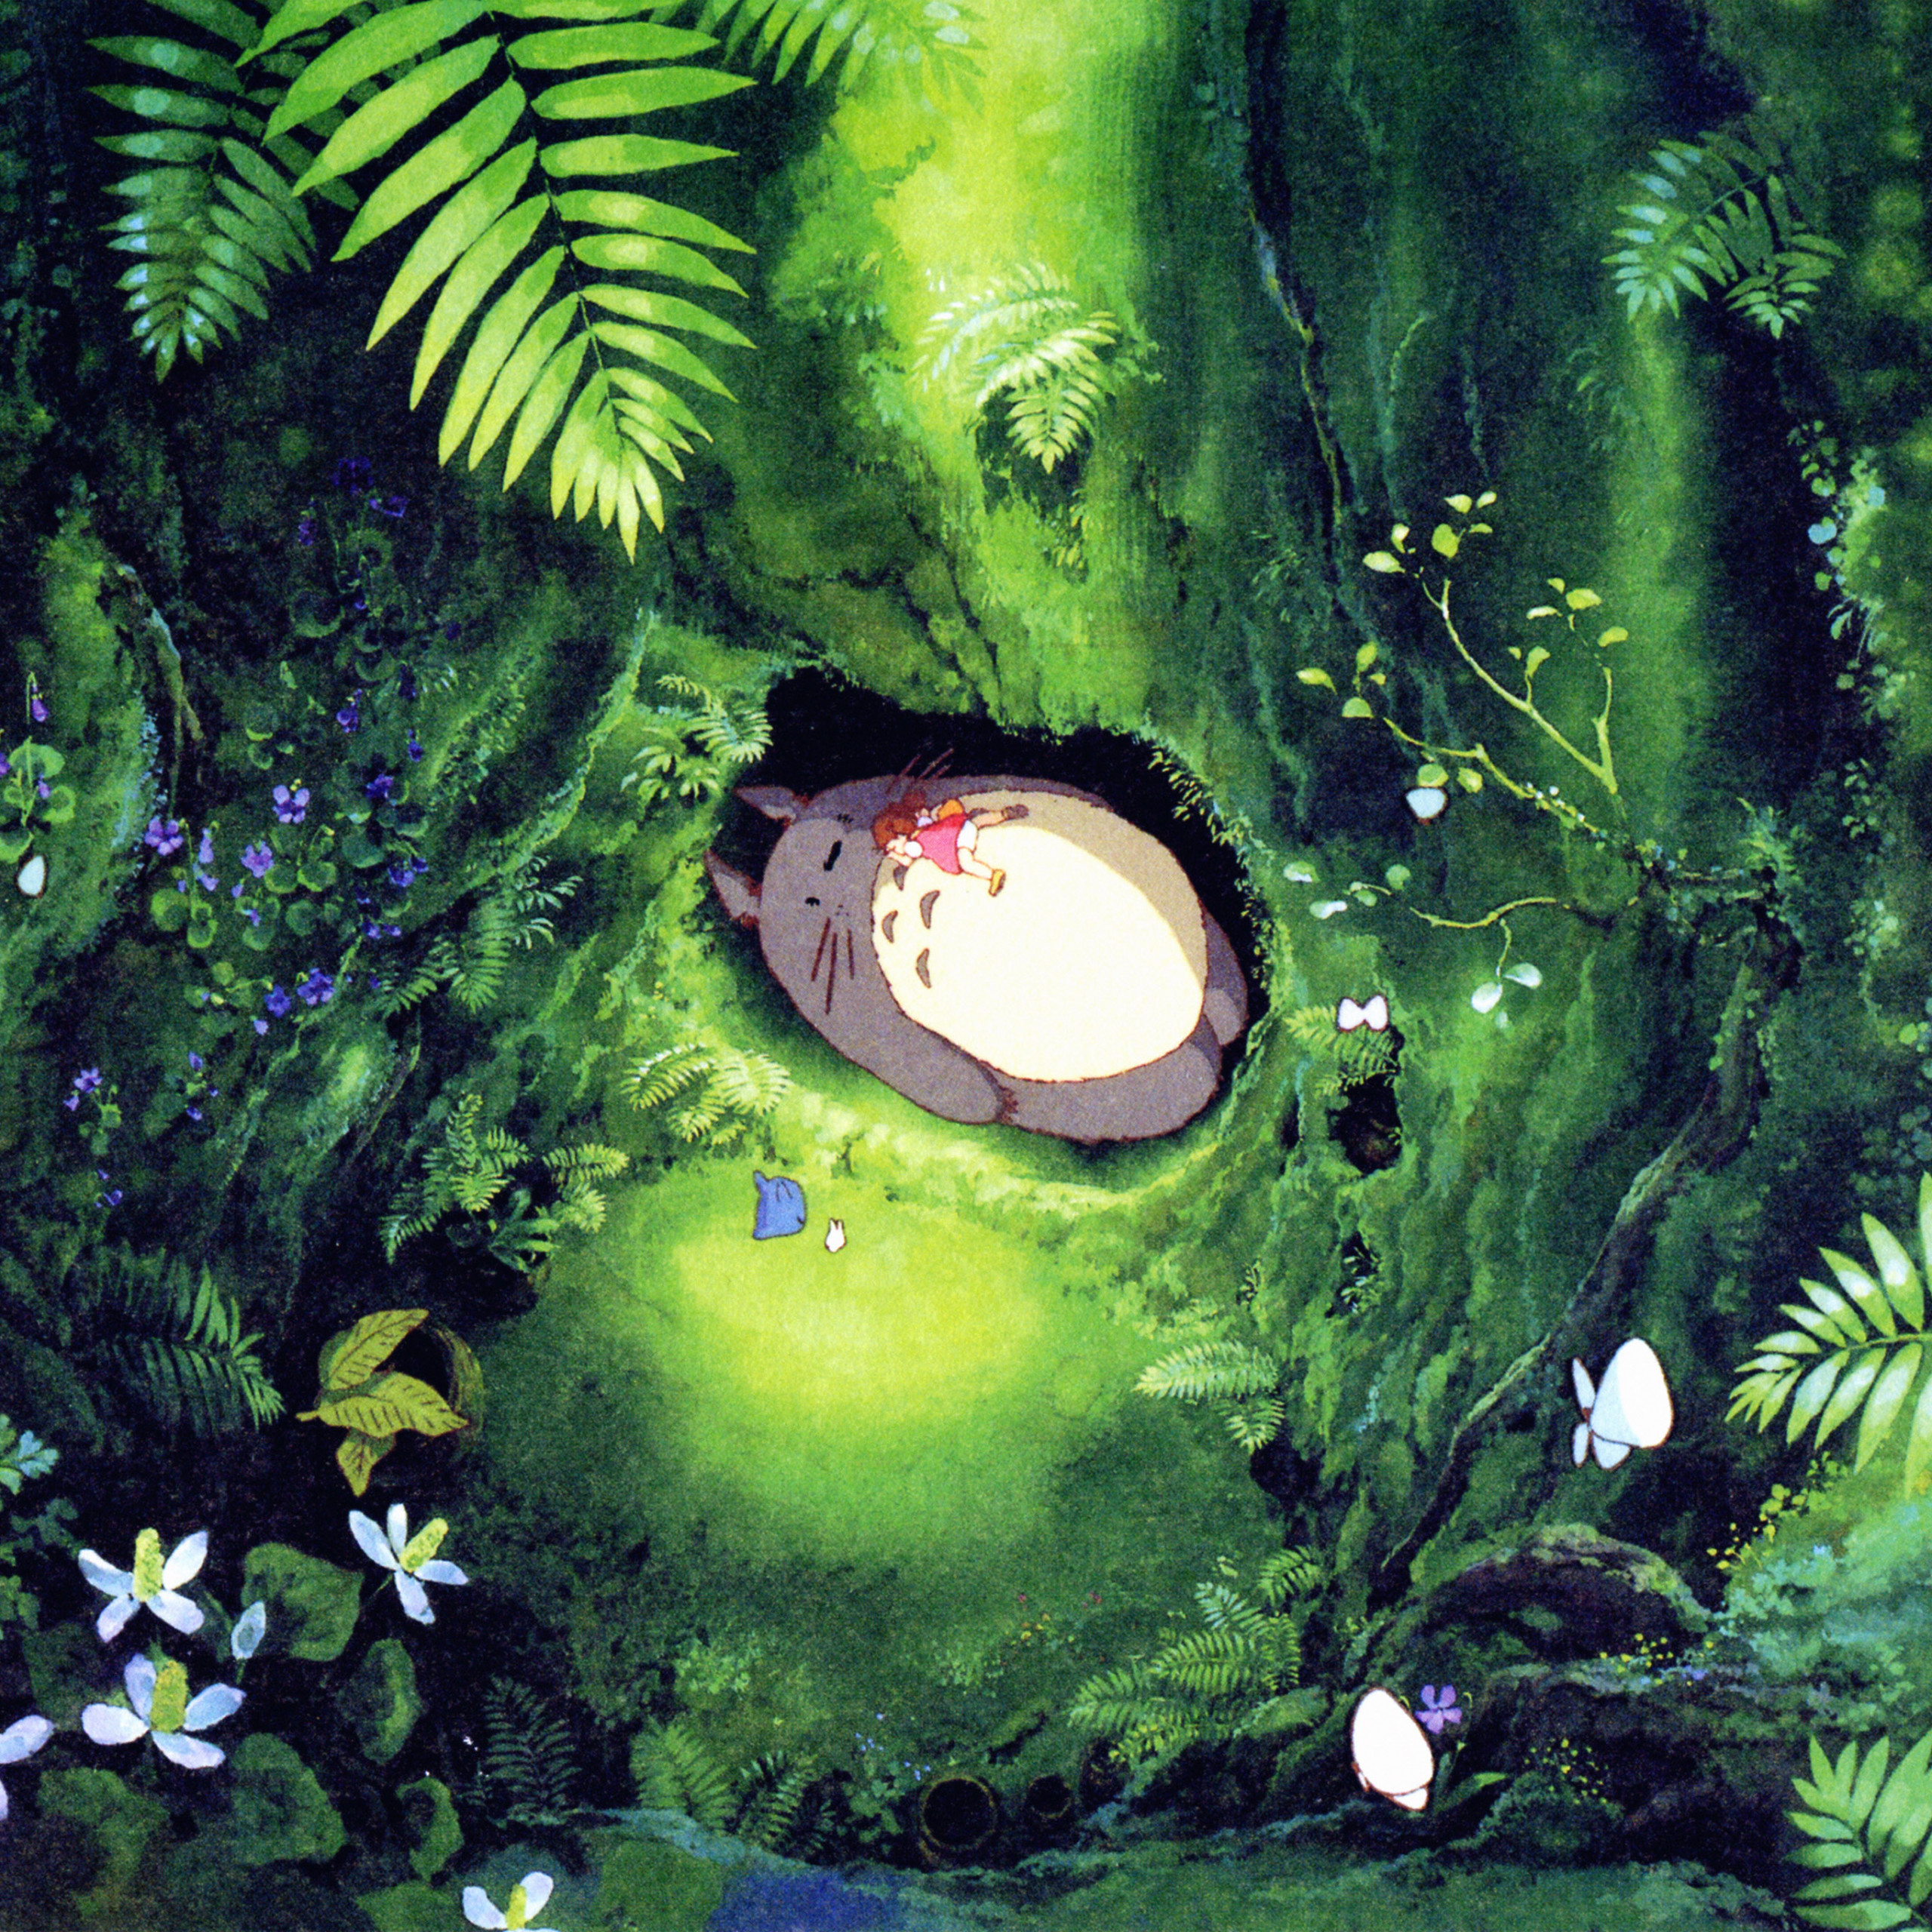 papers ap14 japan totoro art green anime illustration 40 wallpaper